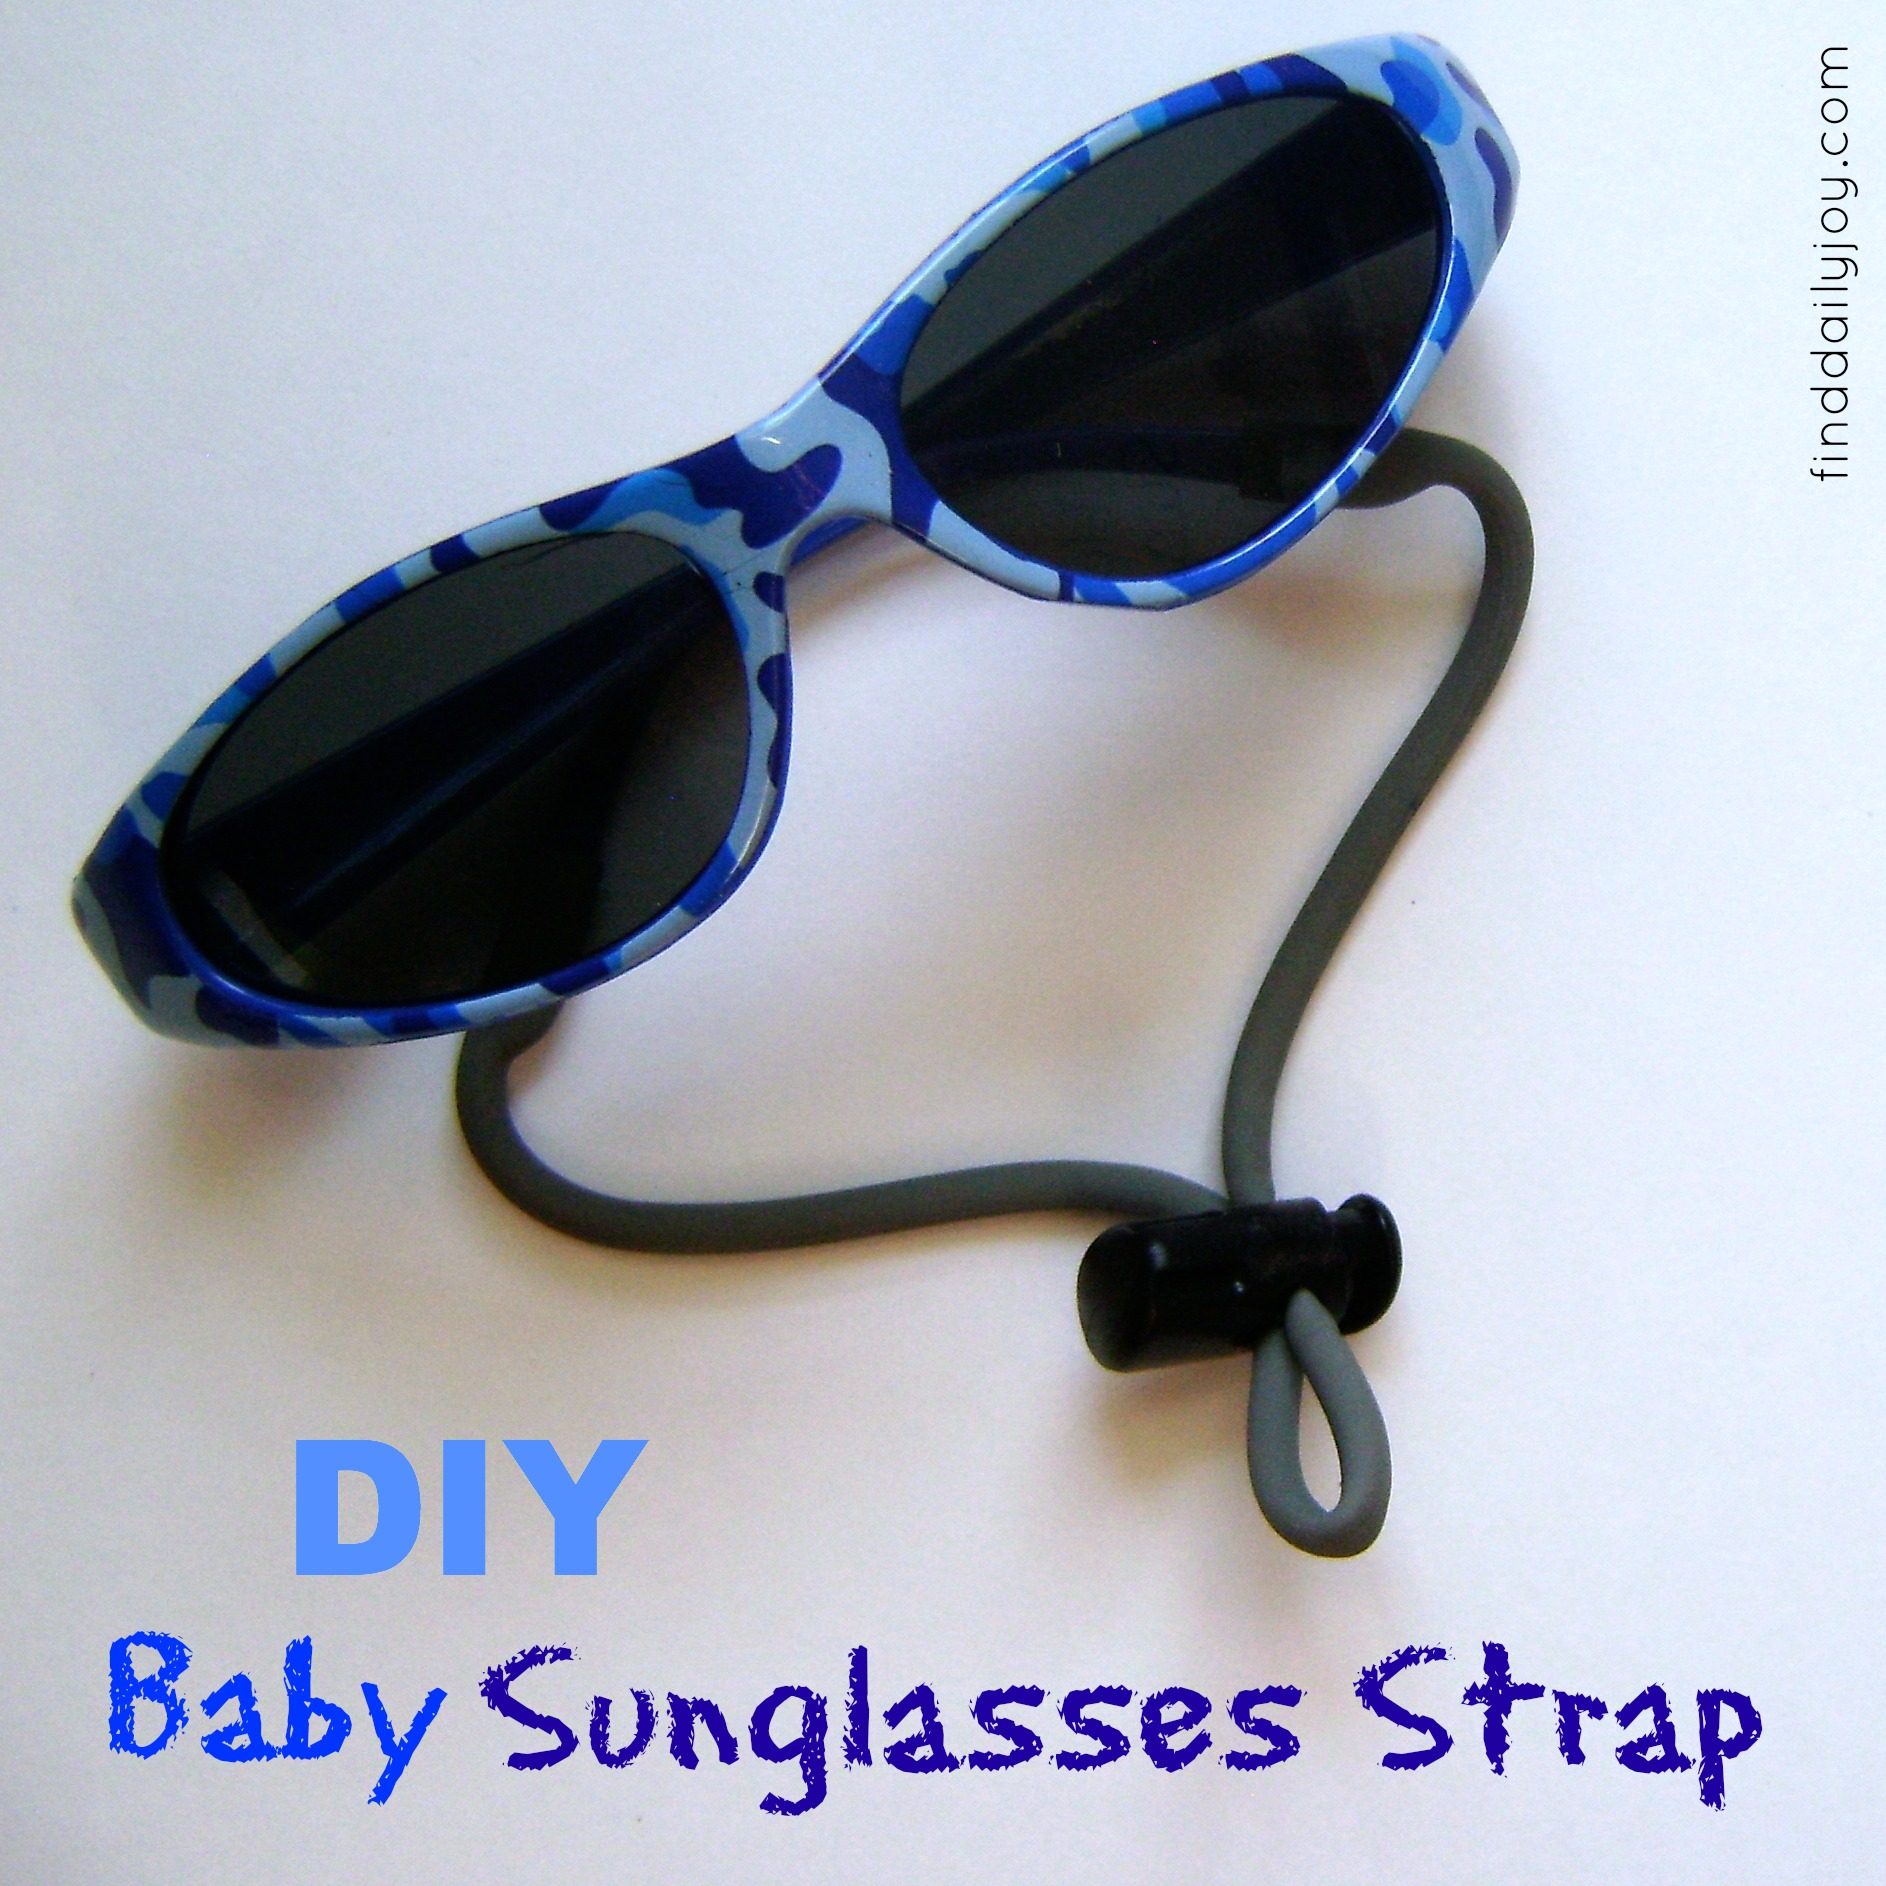 6ae0e274988 Make Your Own Baby Sunglasses Strap  Tutorial  - finddailyjoy.com